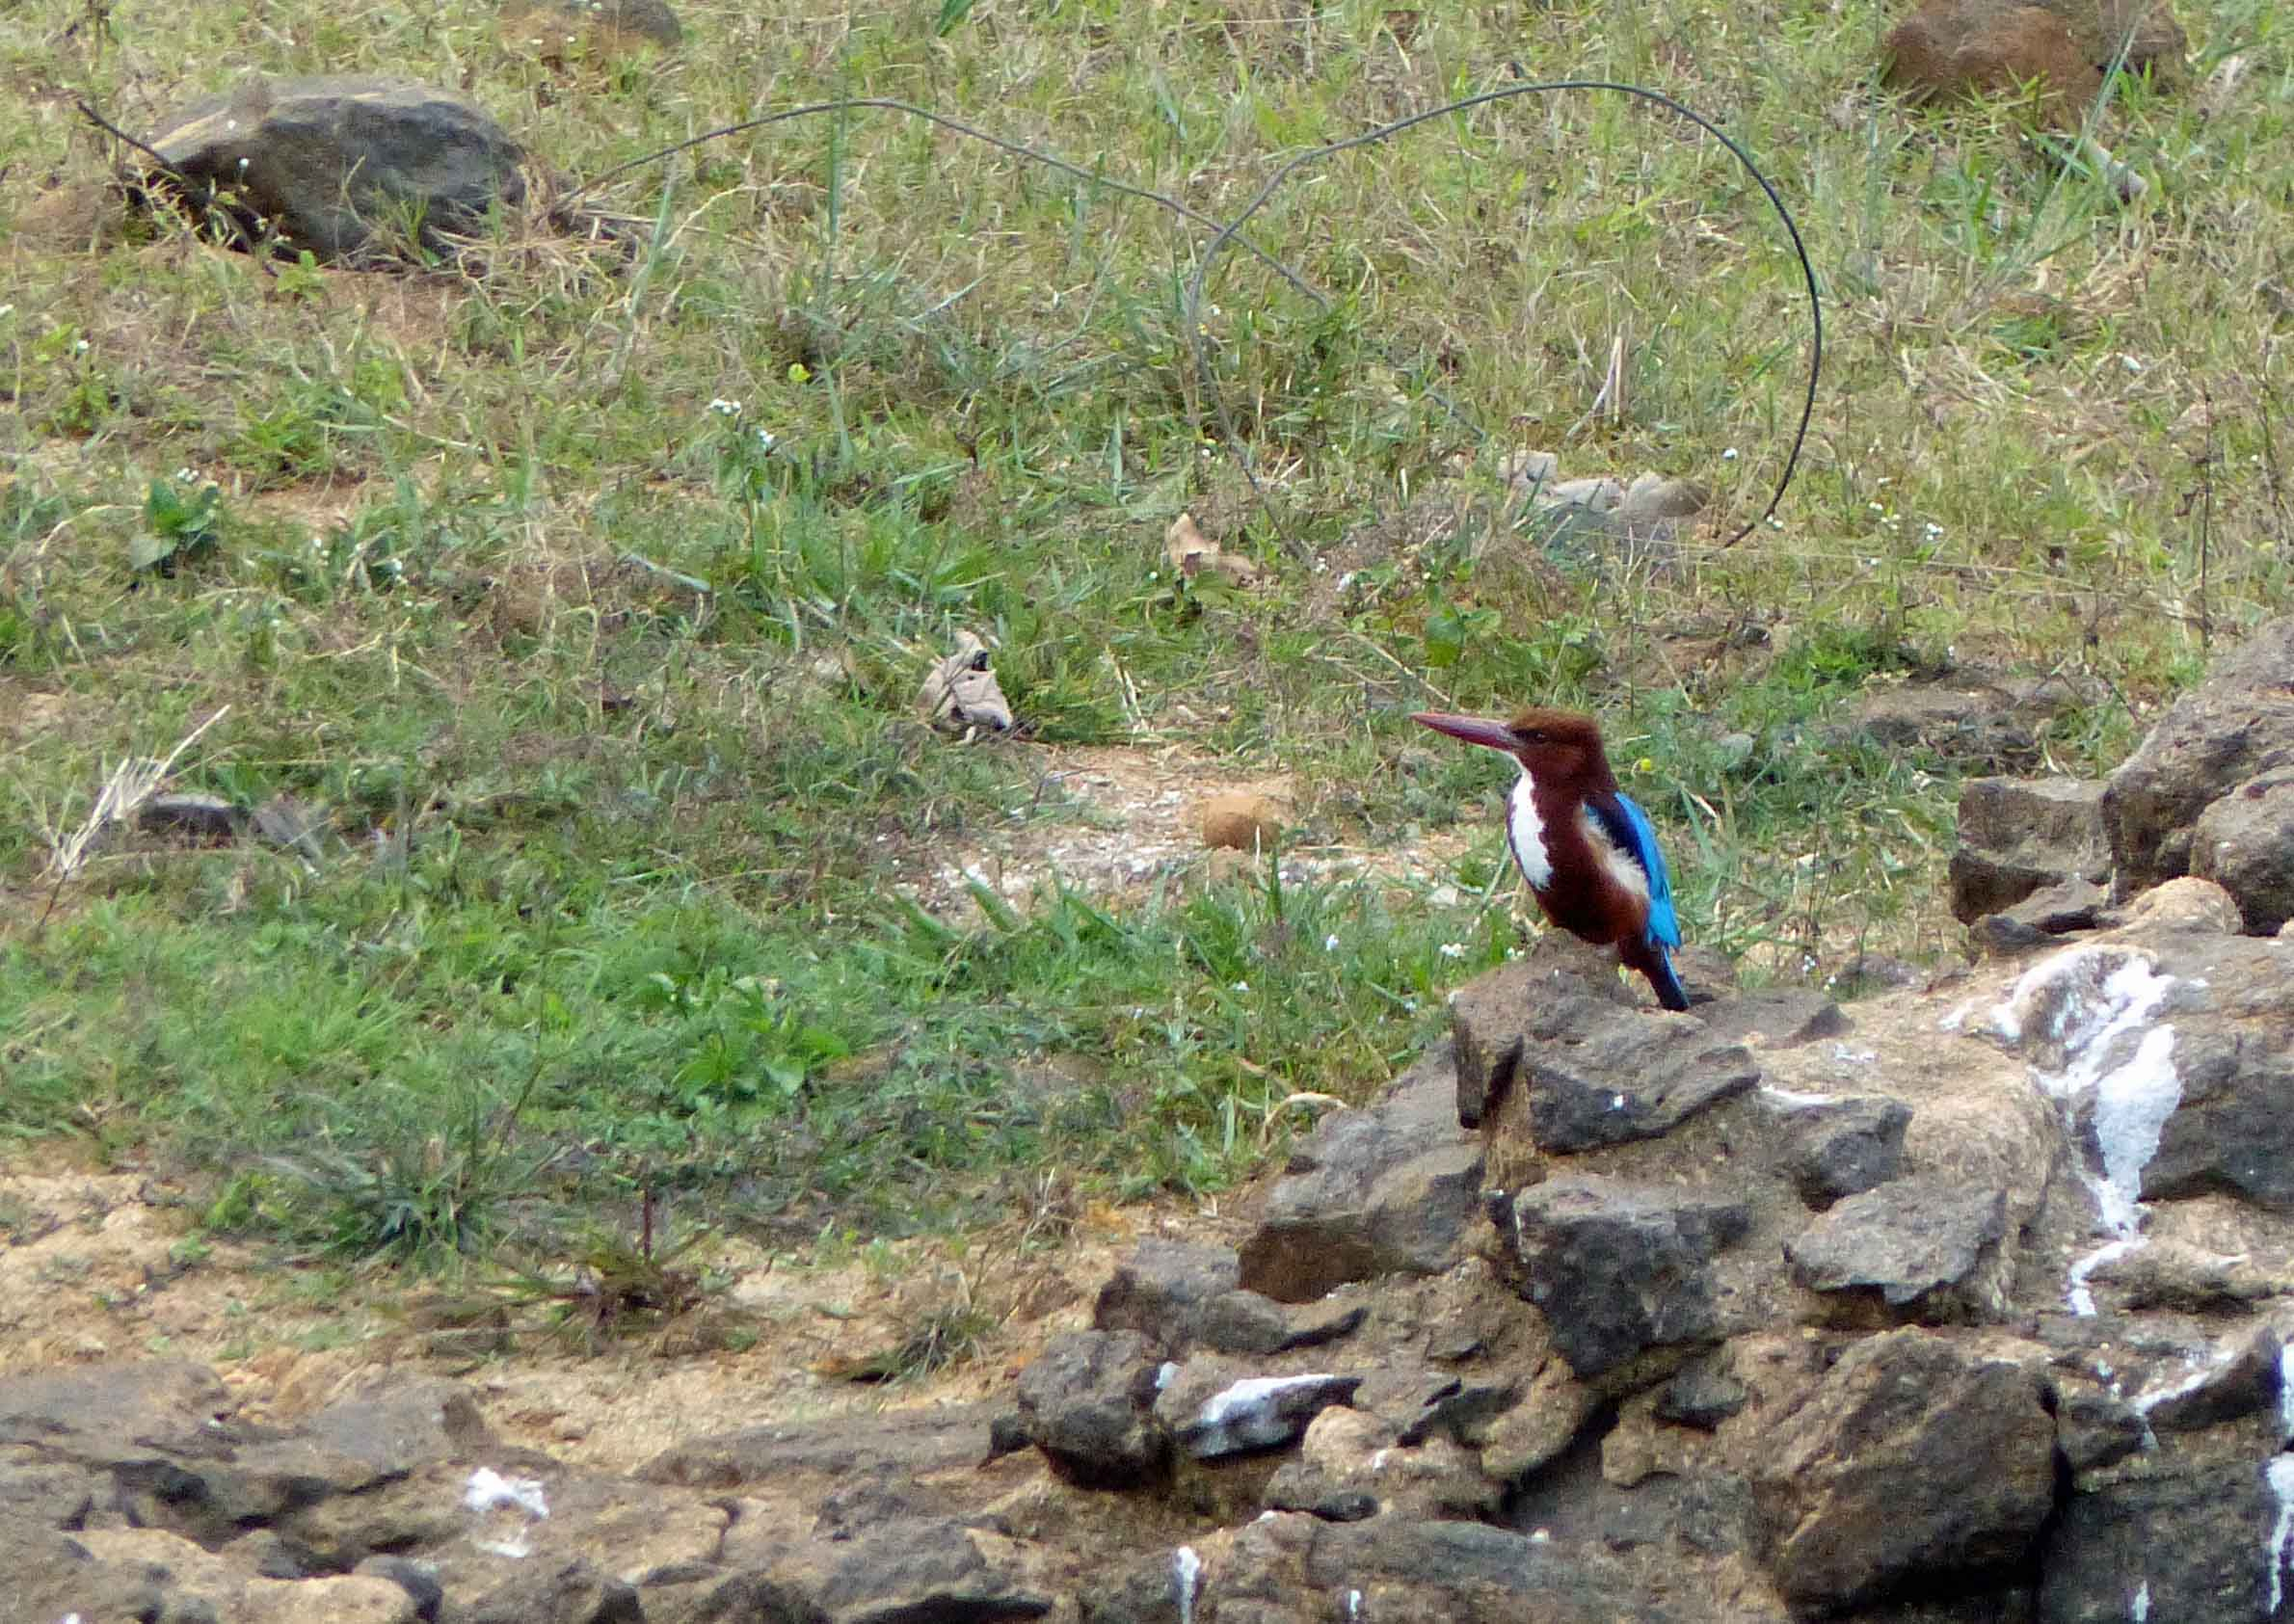 Small brown and blue bird on rocky ground